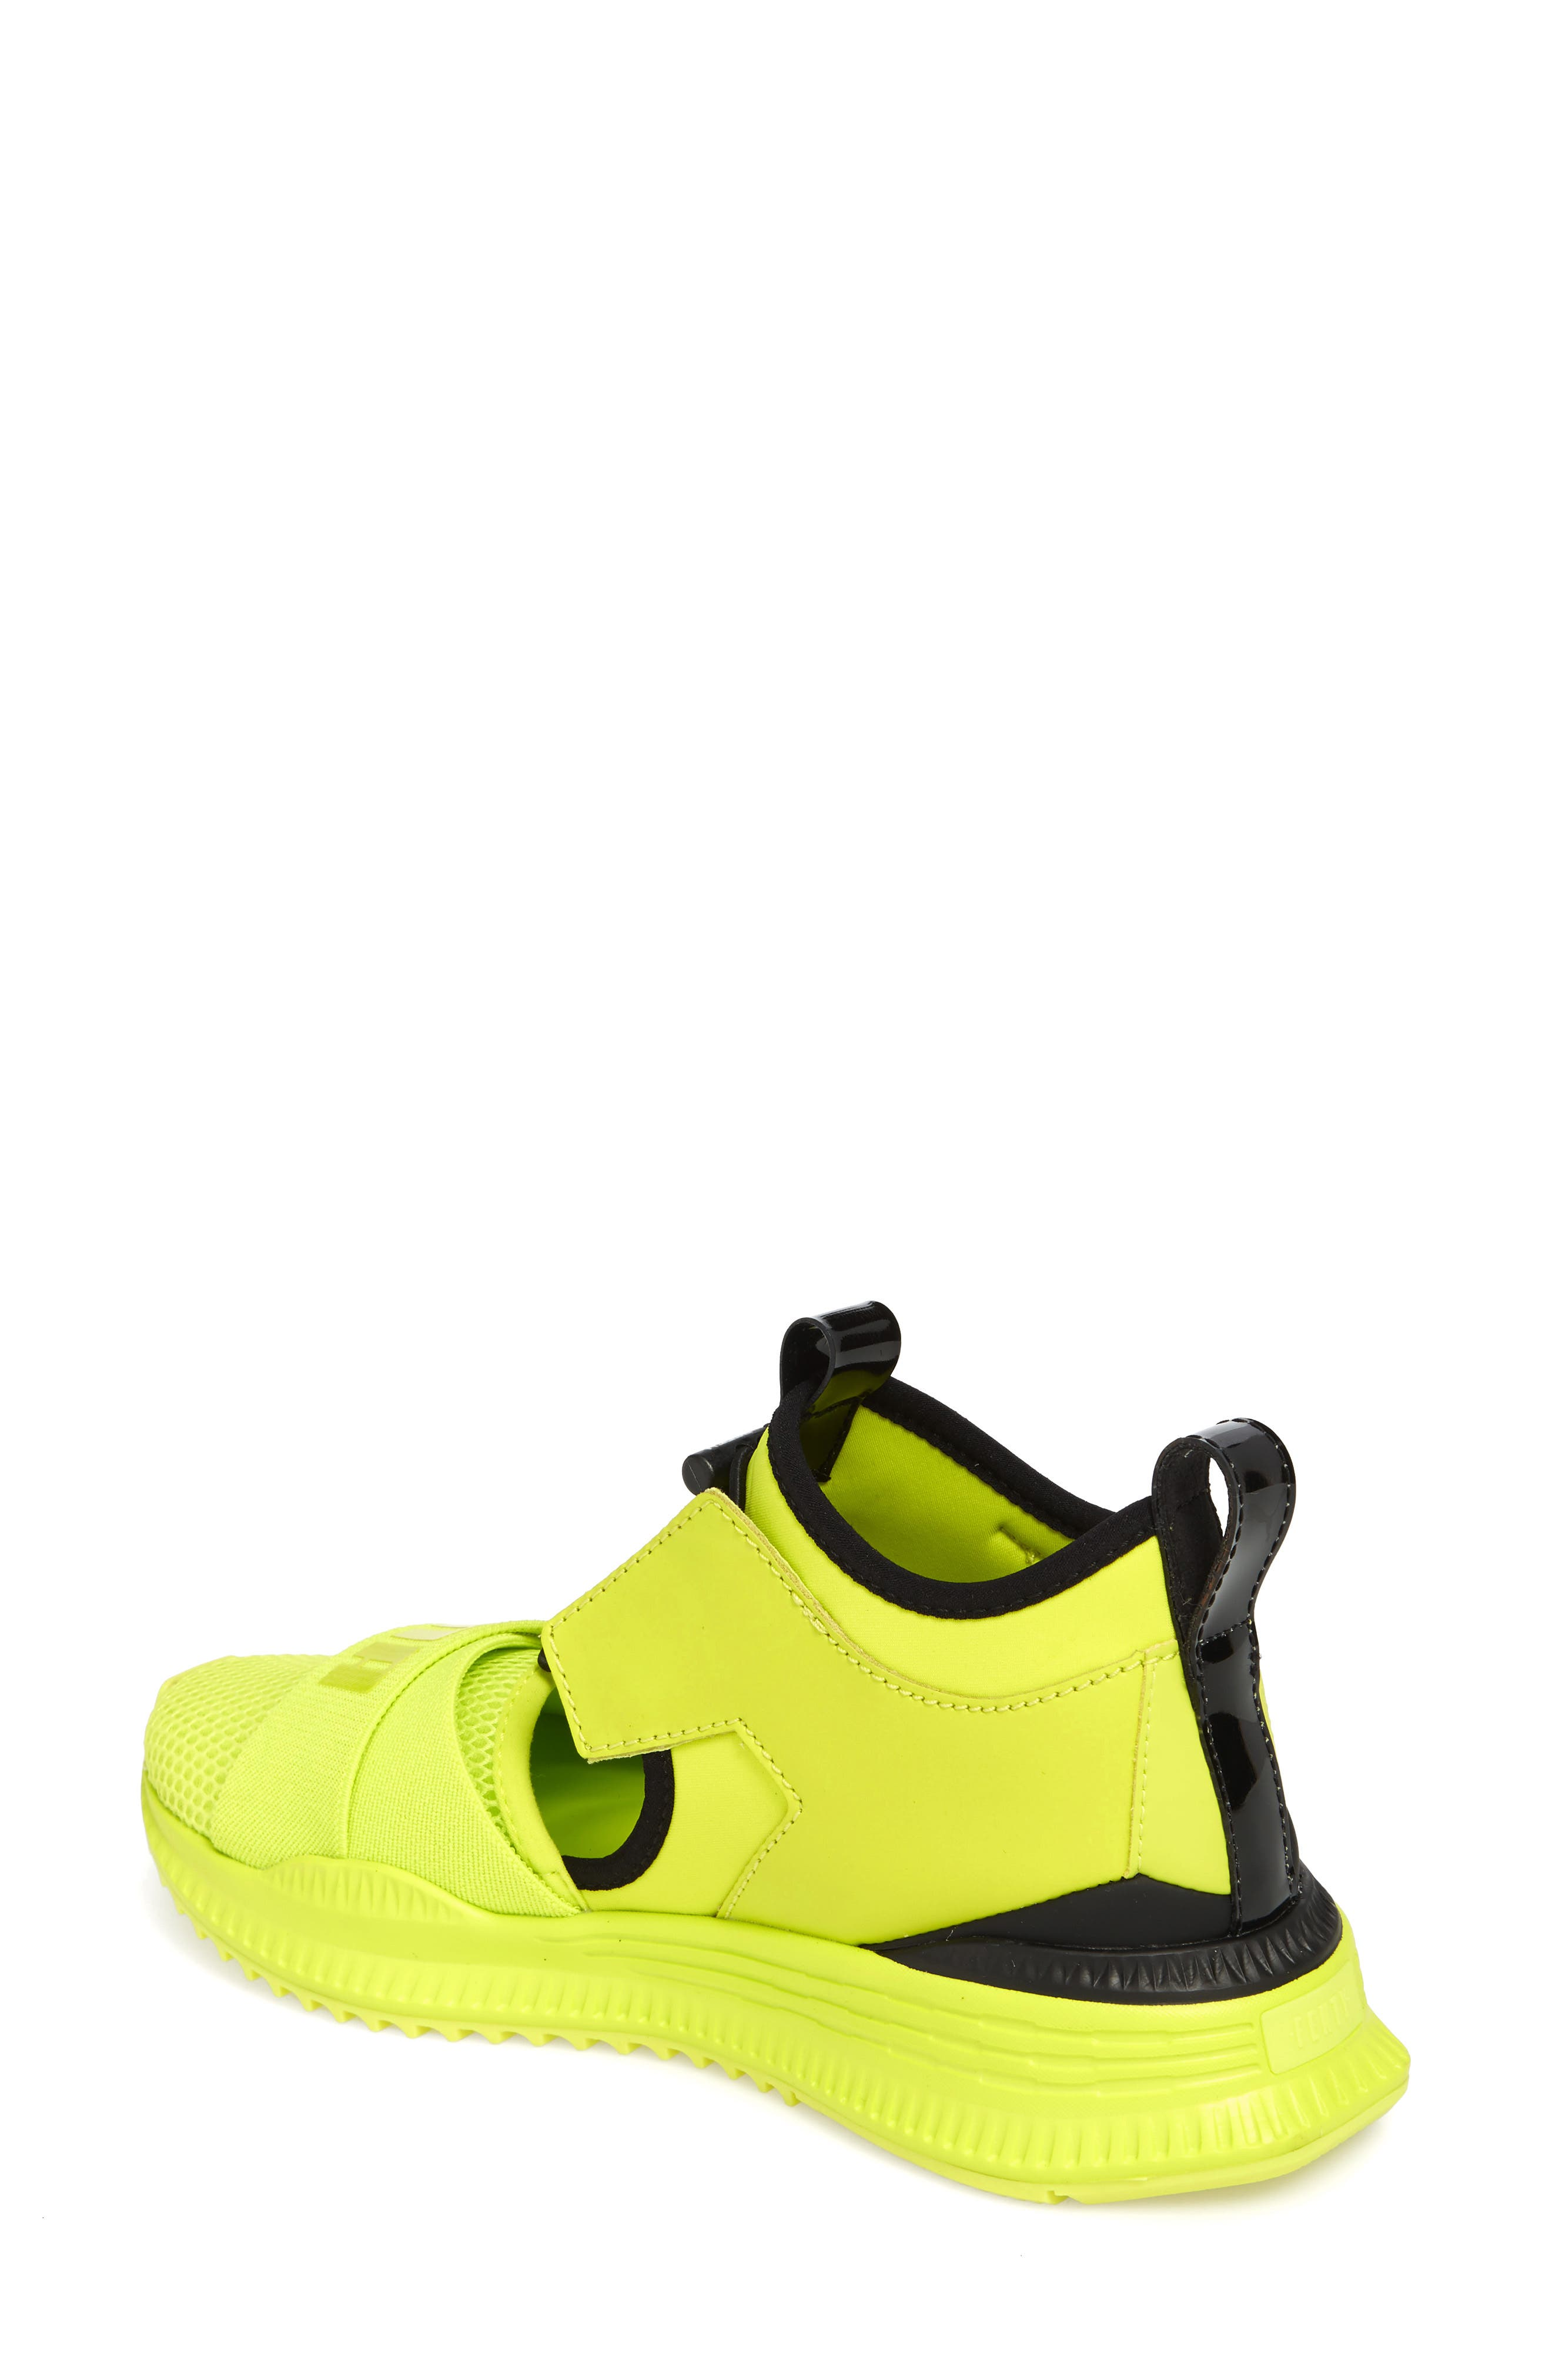 FENTY PUMA by Rihanna Avid Sneaker,                             Alternate thumbnail 2, color,                             Lime Punch/ Black/ Lime Punch